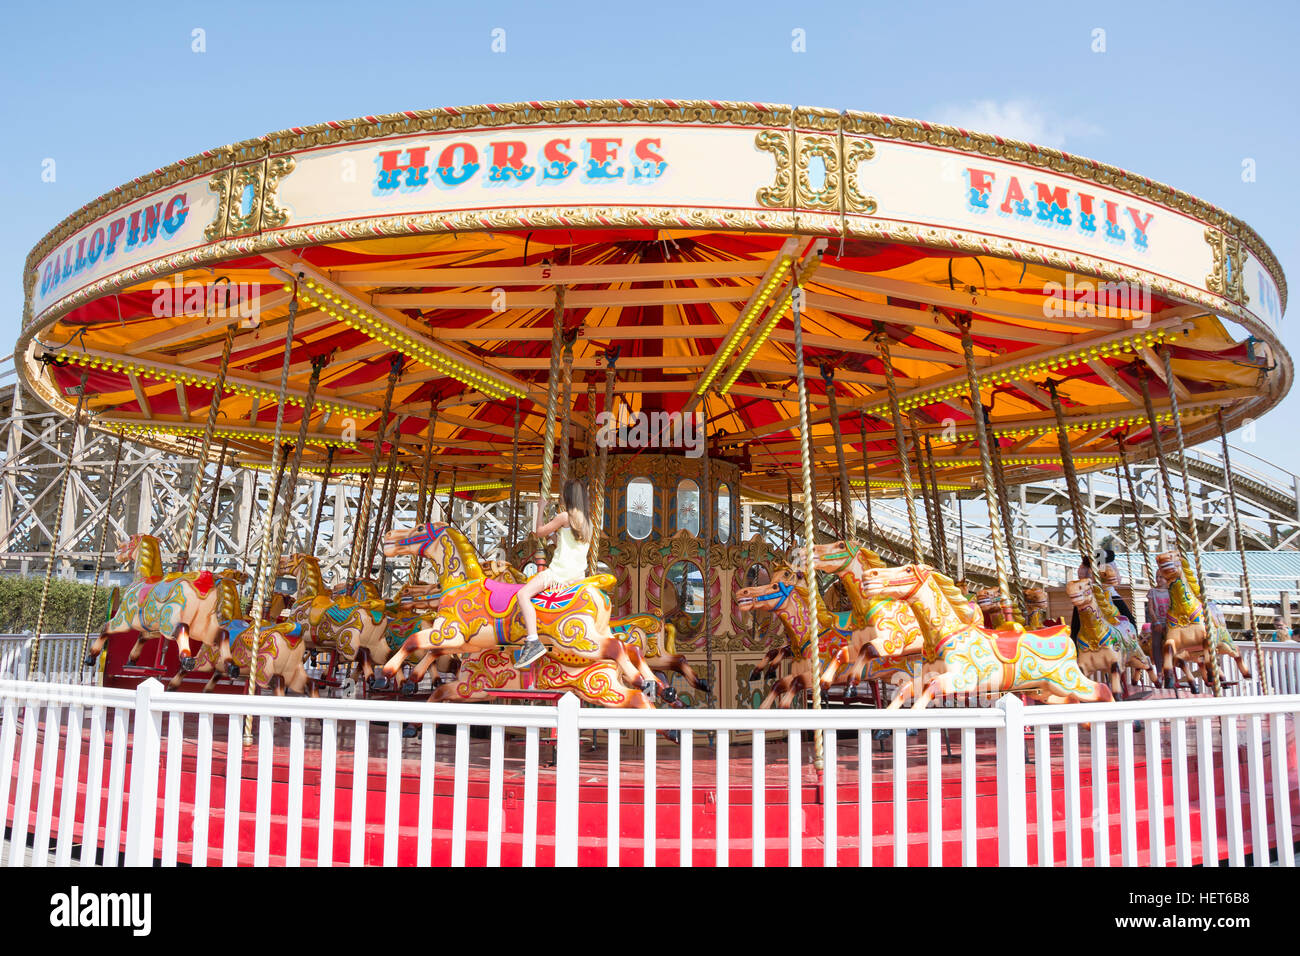 'Galloping Horses' carousel at Dreamland Margate amusement park, Marine Terrace, Margate, Kent, England, - Stock Image